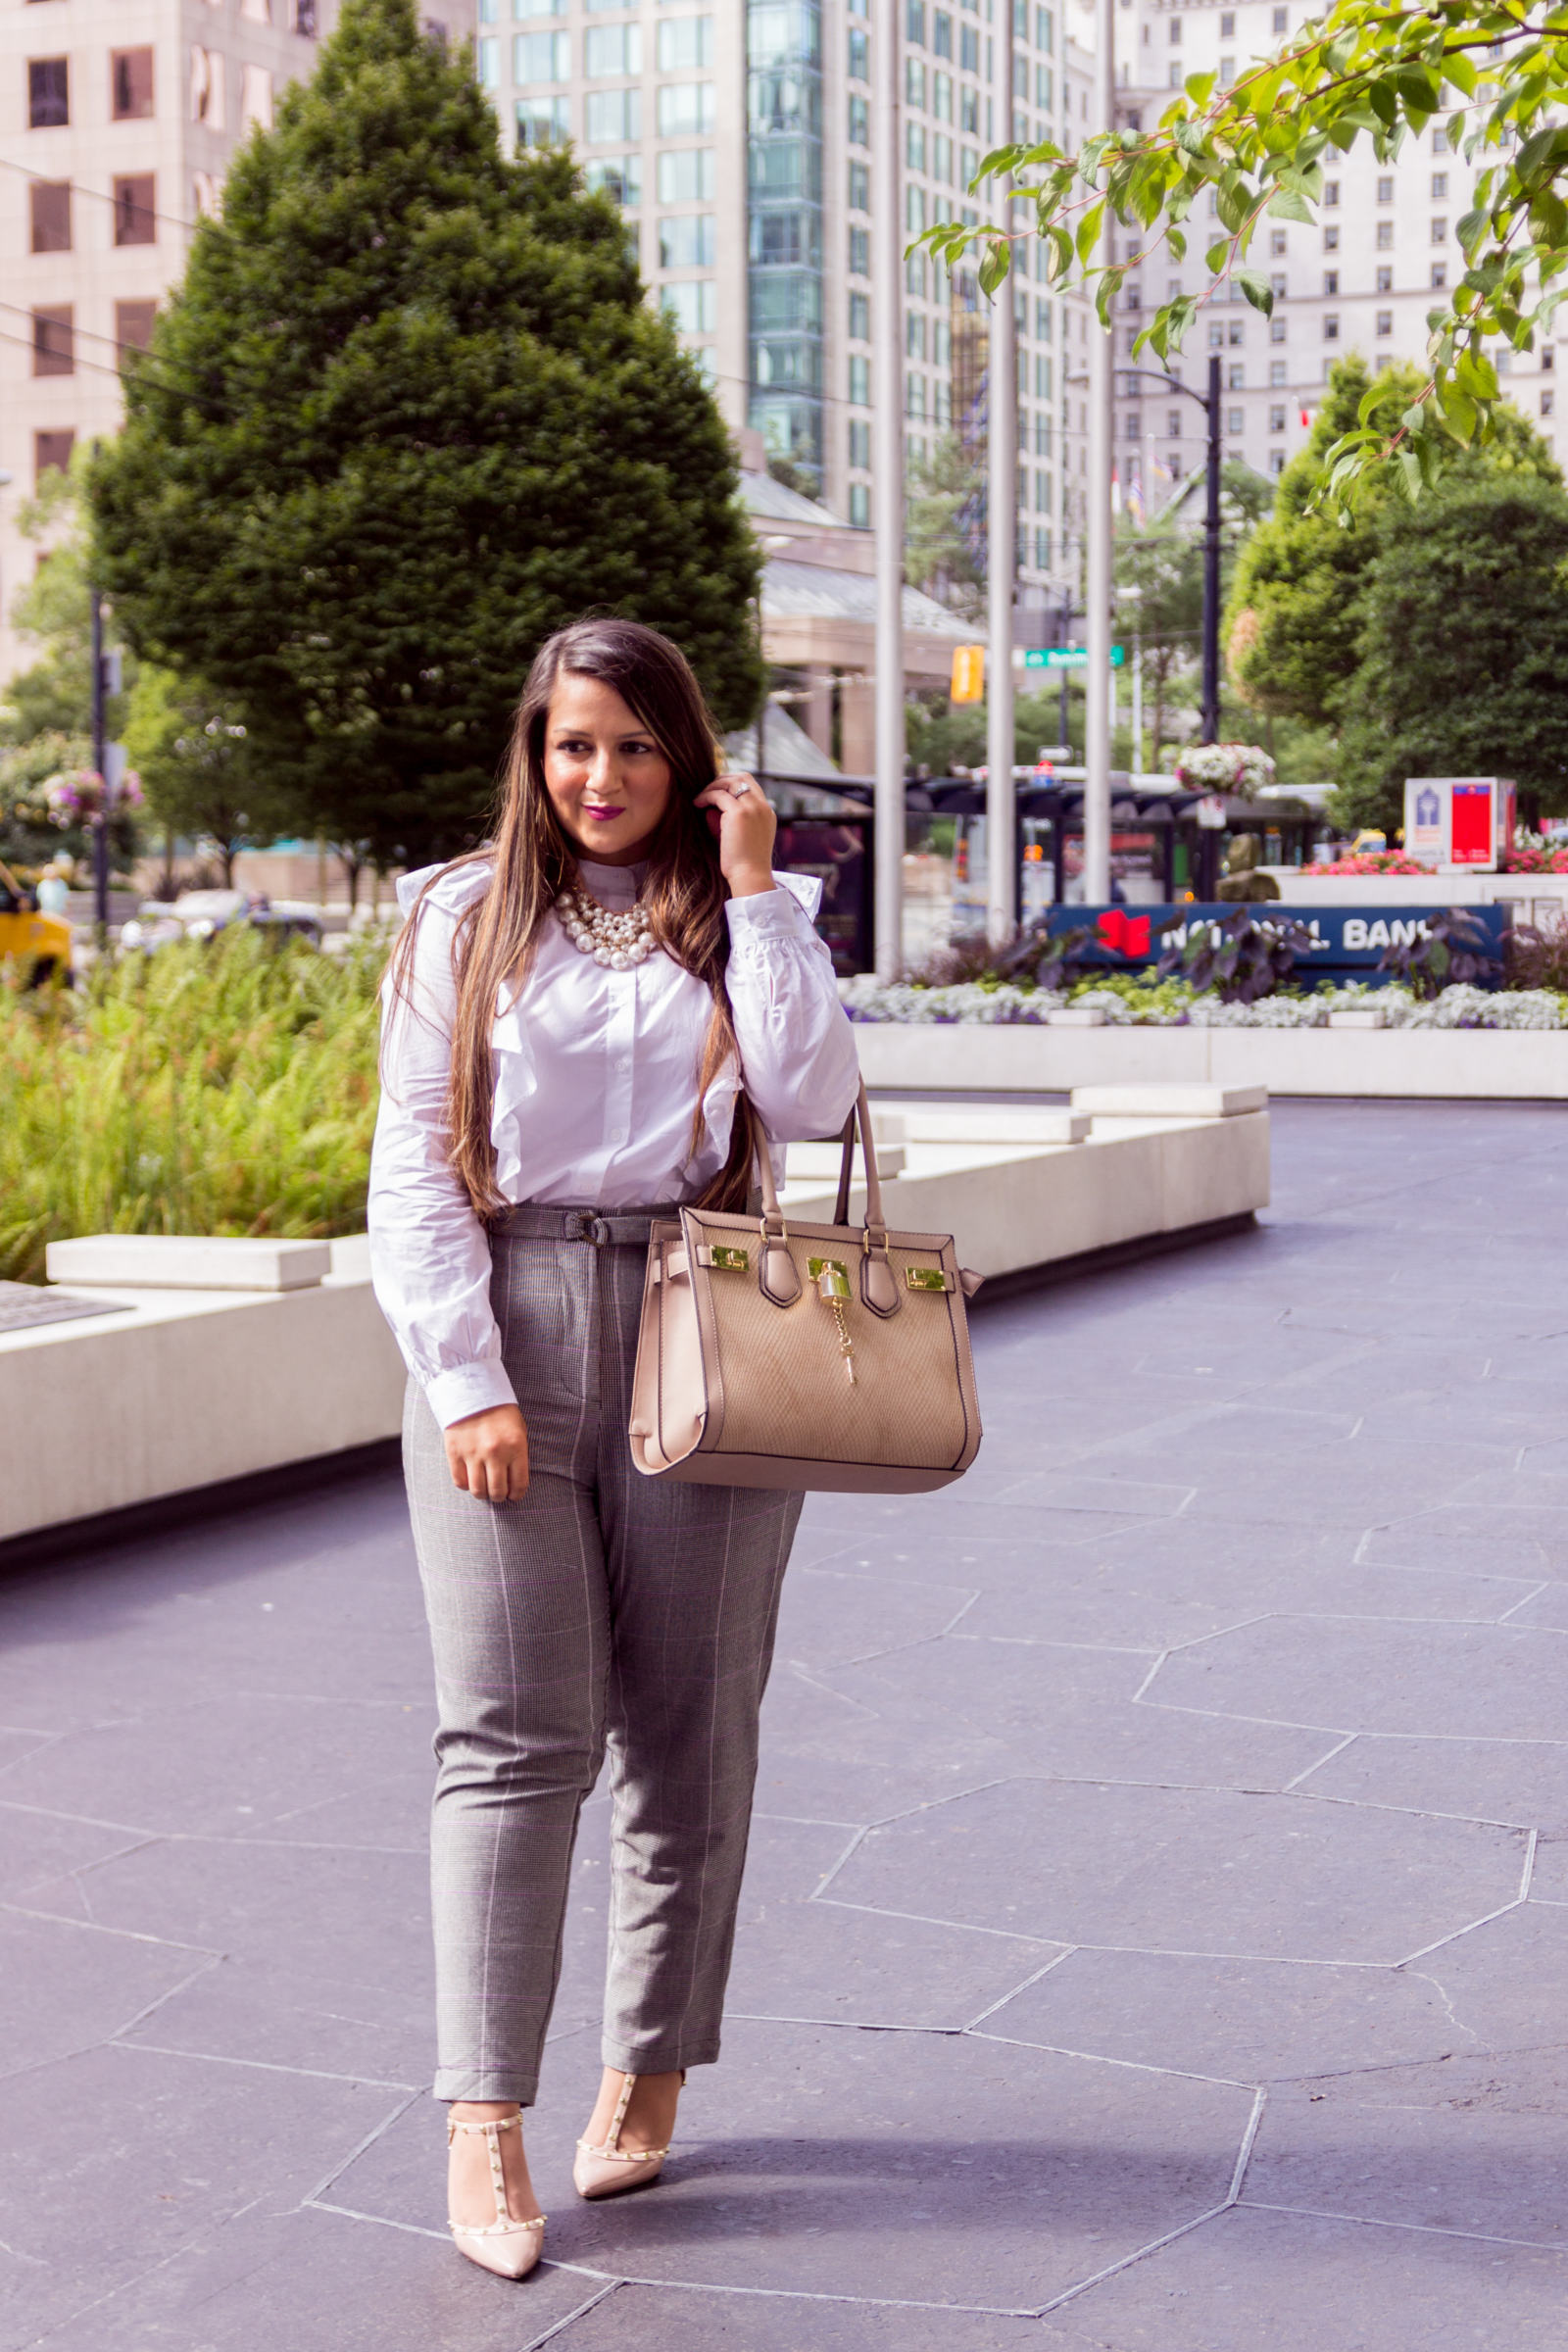 Chic Office Looks: How to survive summer in the office